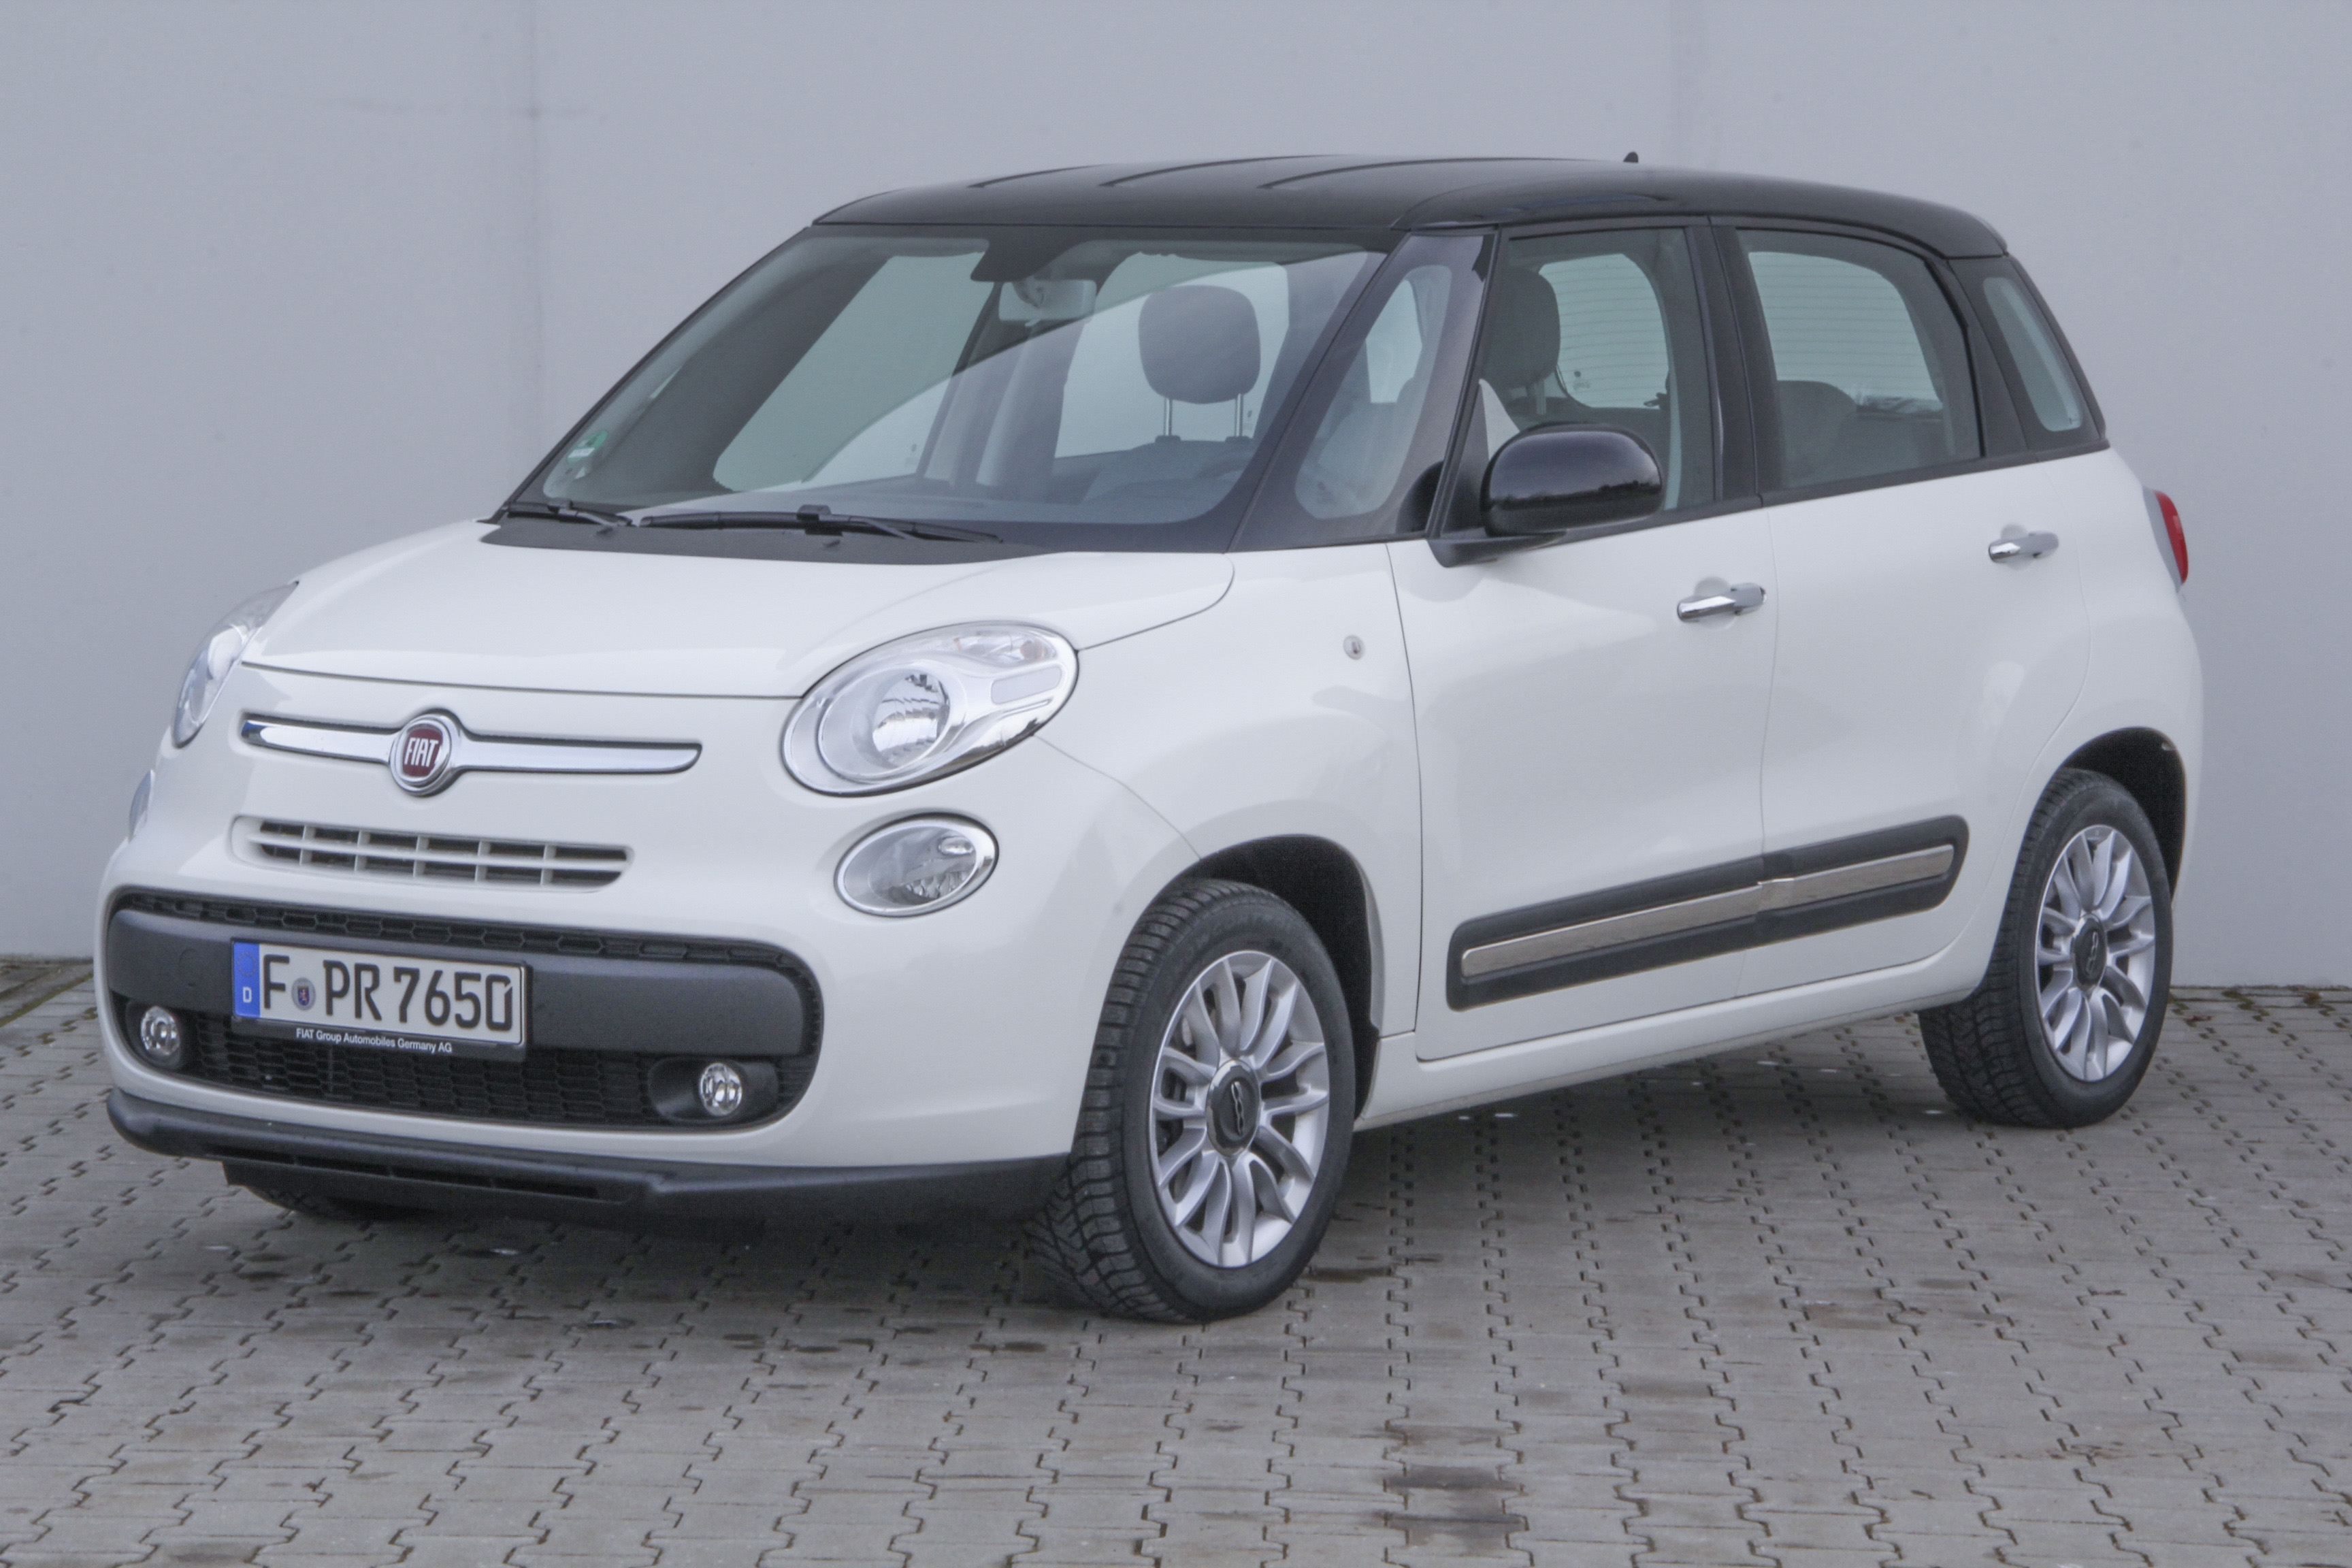 fails crash fiat autoevolution video iihs test at production in updated with announces parts the serbia of new kragujevac news